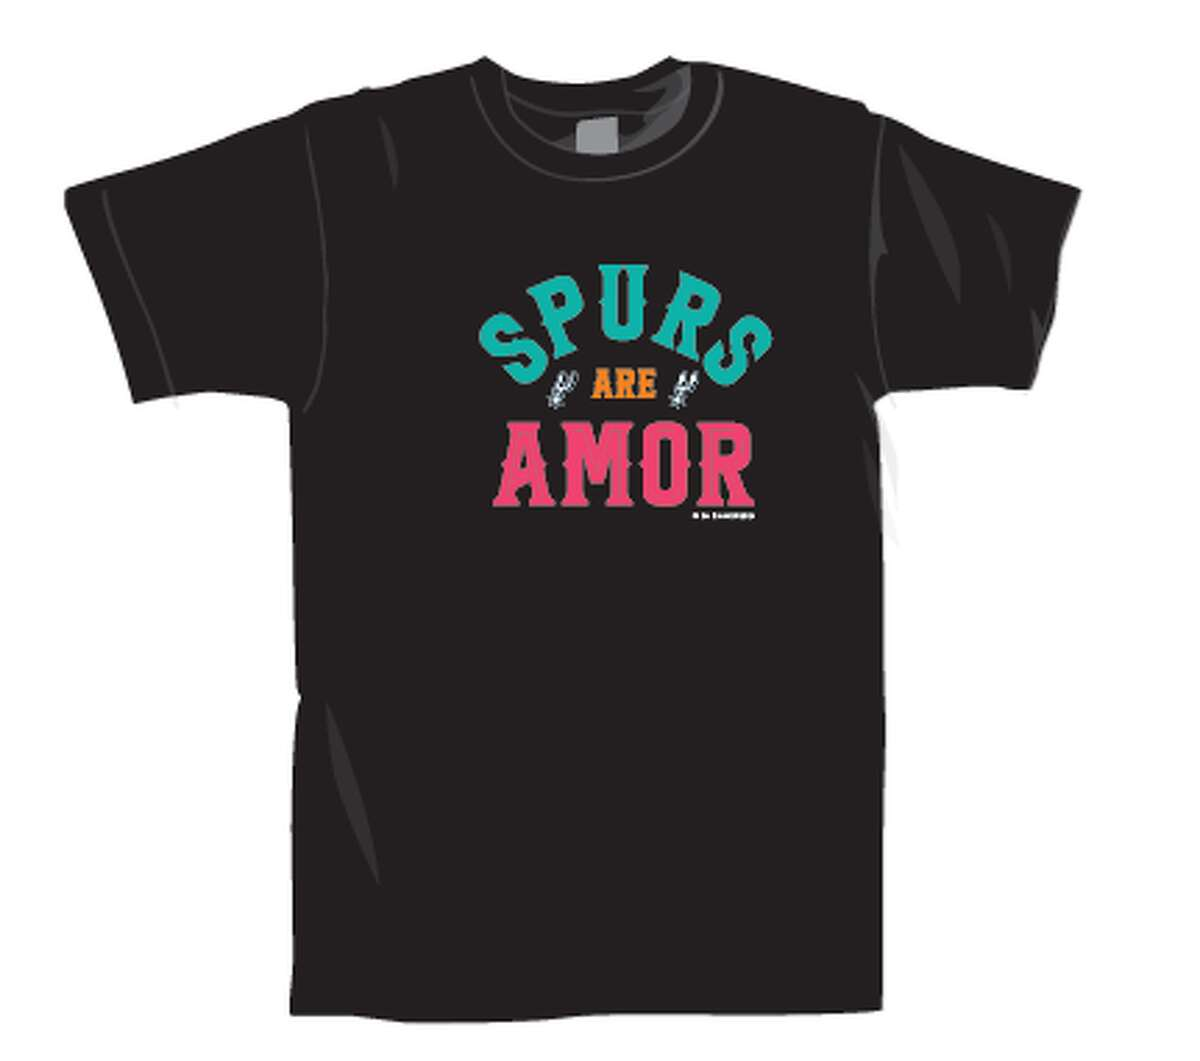 """Spurs Give, the team's non-profit, unveiled """"Spurs are Amor,"""" a line of six T-shirts and a bandana, on Thursday. The fundraiser benefits the group's efforts in giving back to the city, the press release says."""